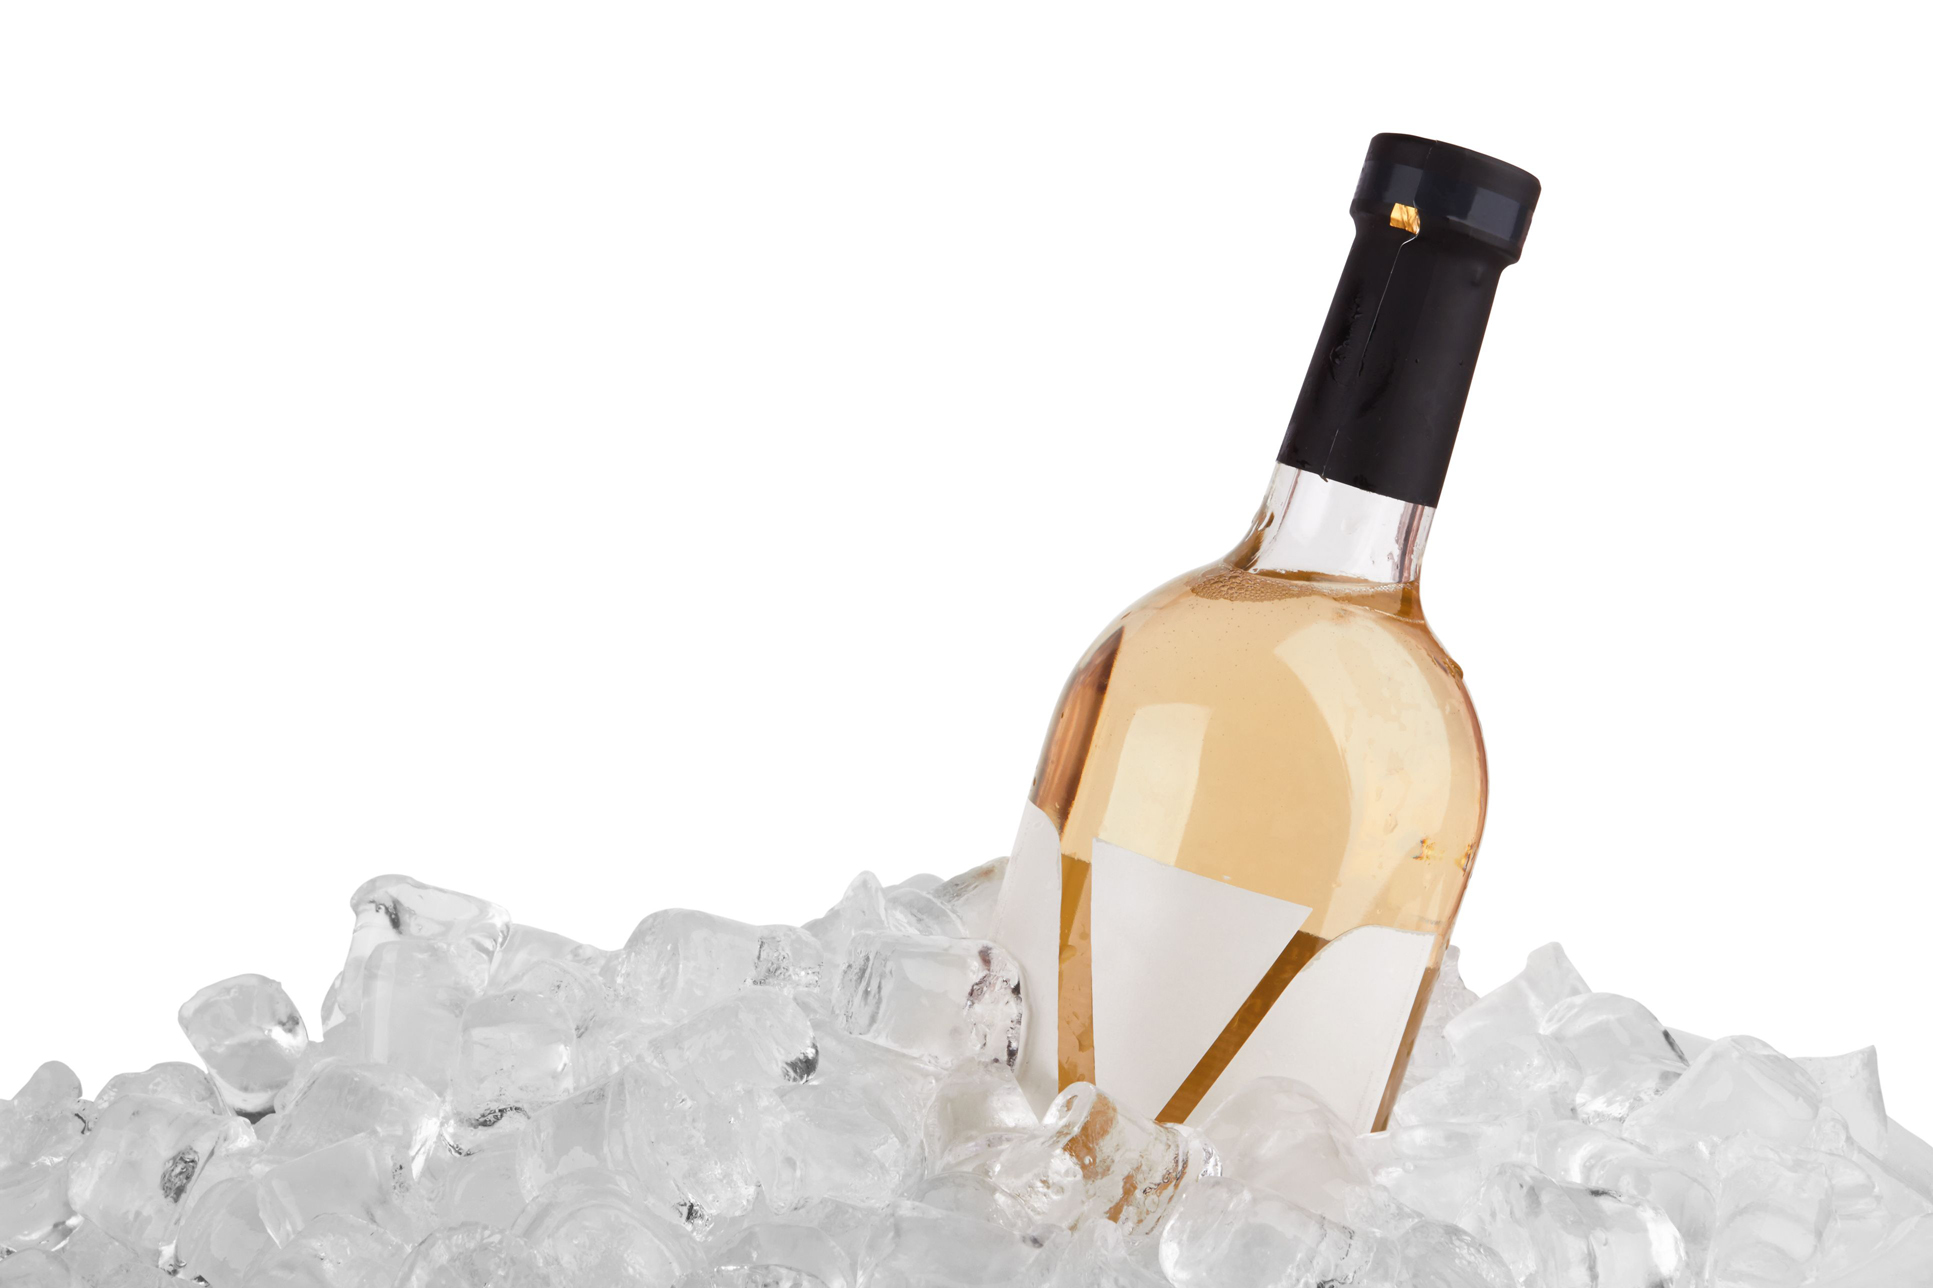 Bottle of white wine in ice